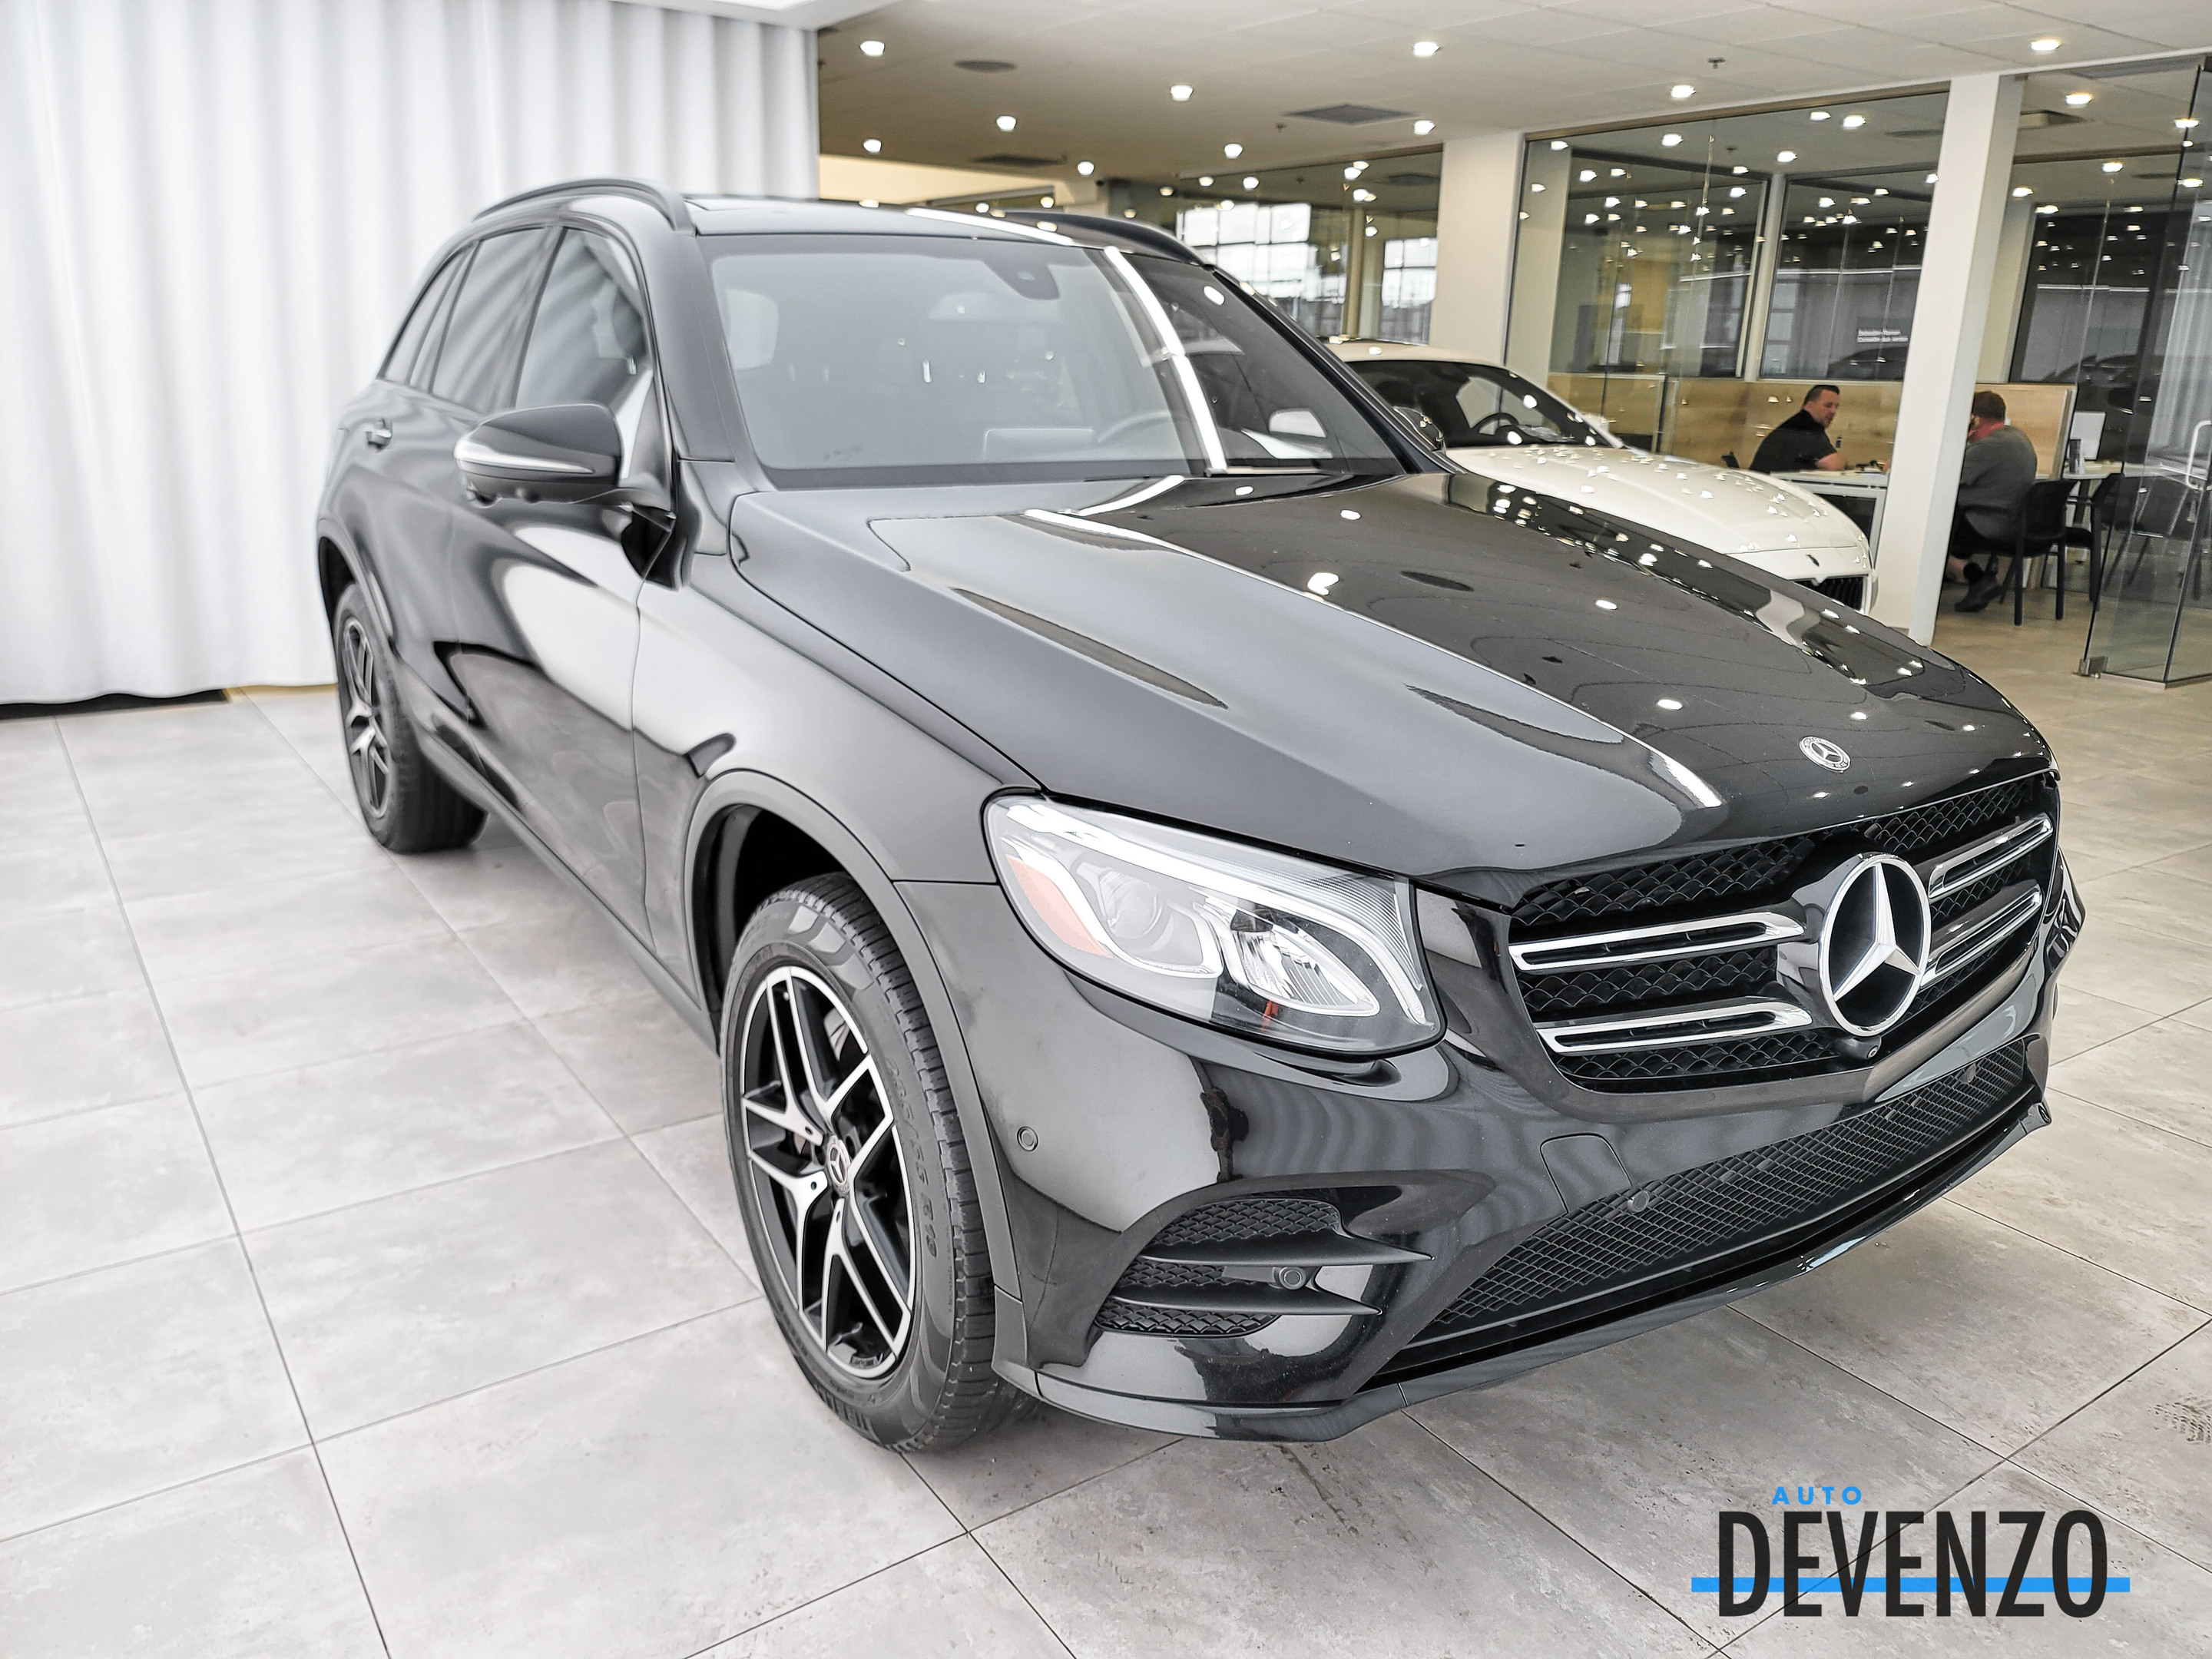 2018 Mercedes-Benz GLC GLC300 4MATIC PREMIUM / AMG NIGHT PACKAGE complet